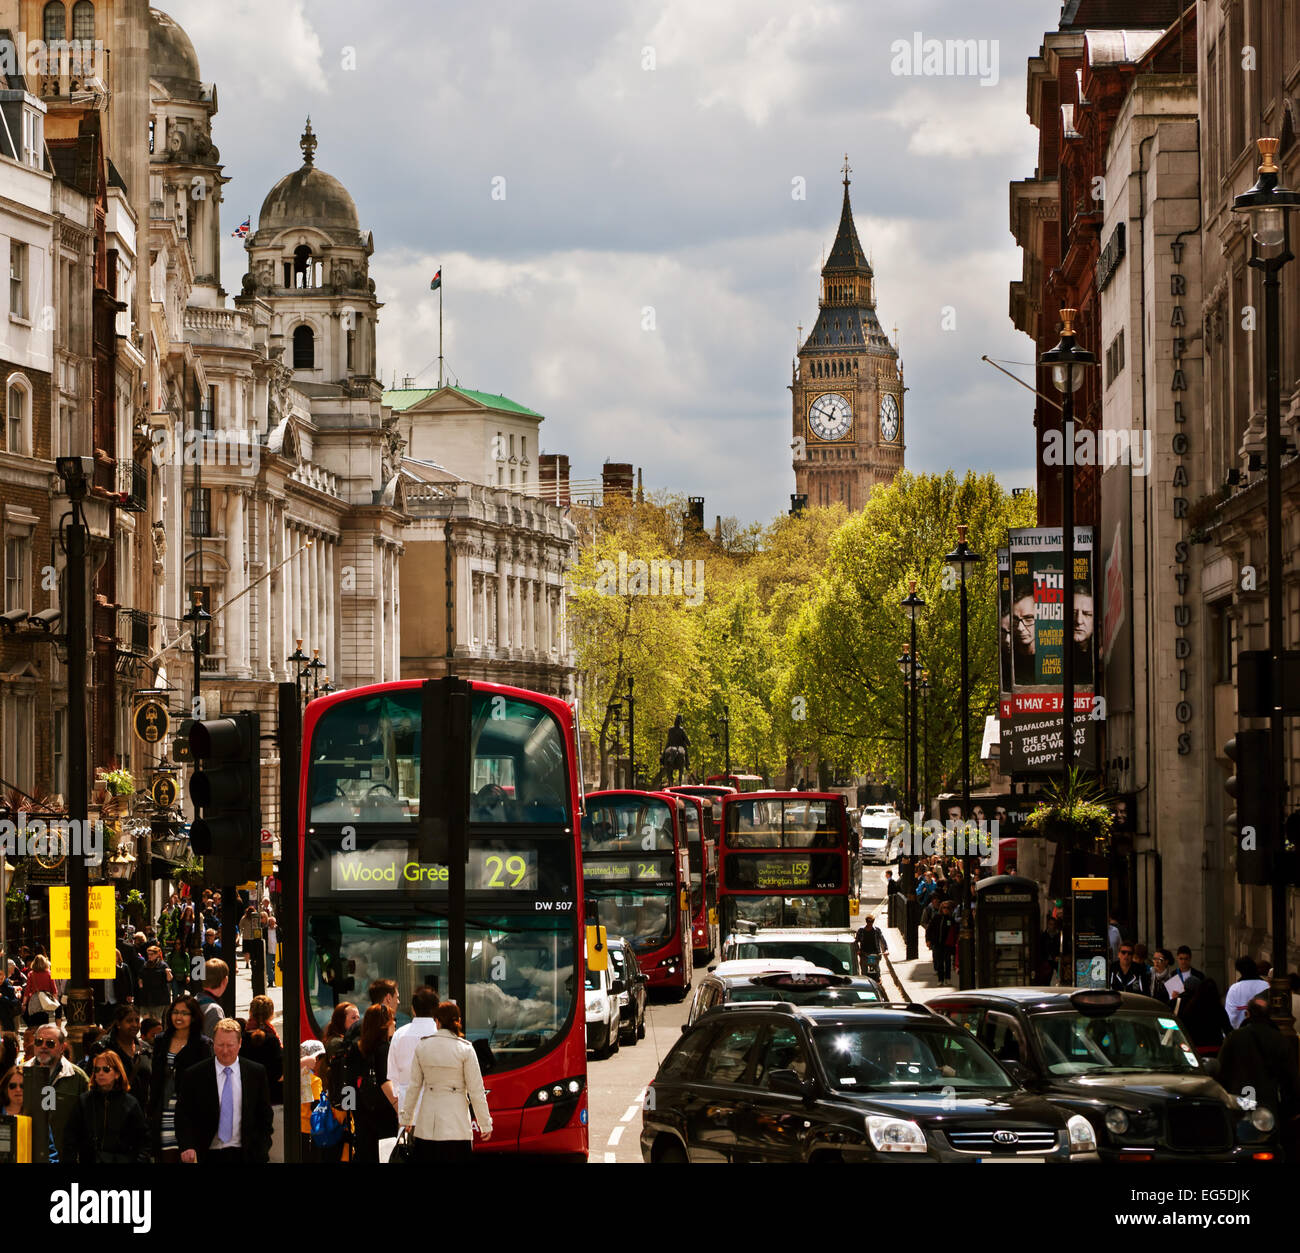 LONDON - September 18: Busy street of London, England, the UK. London is one of the most crowded cities in the world. - Stock Image